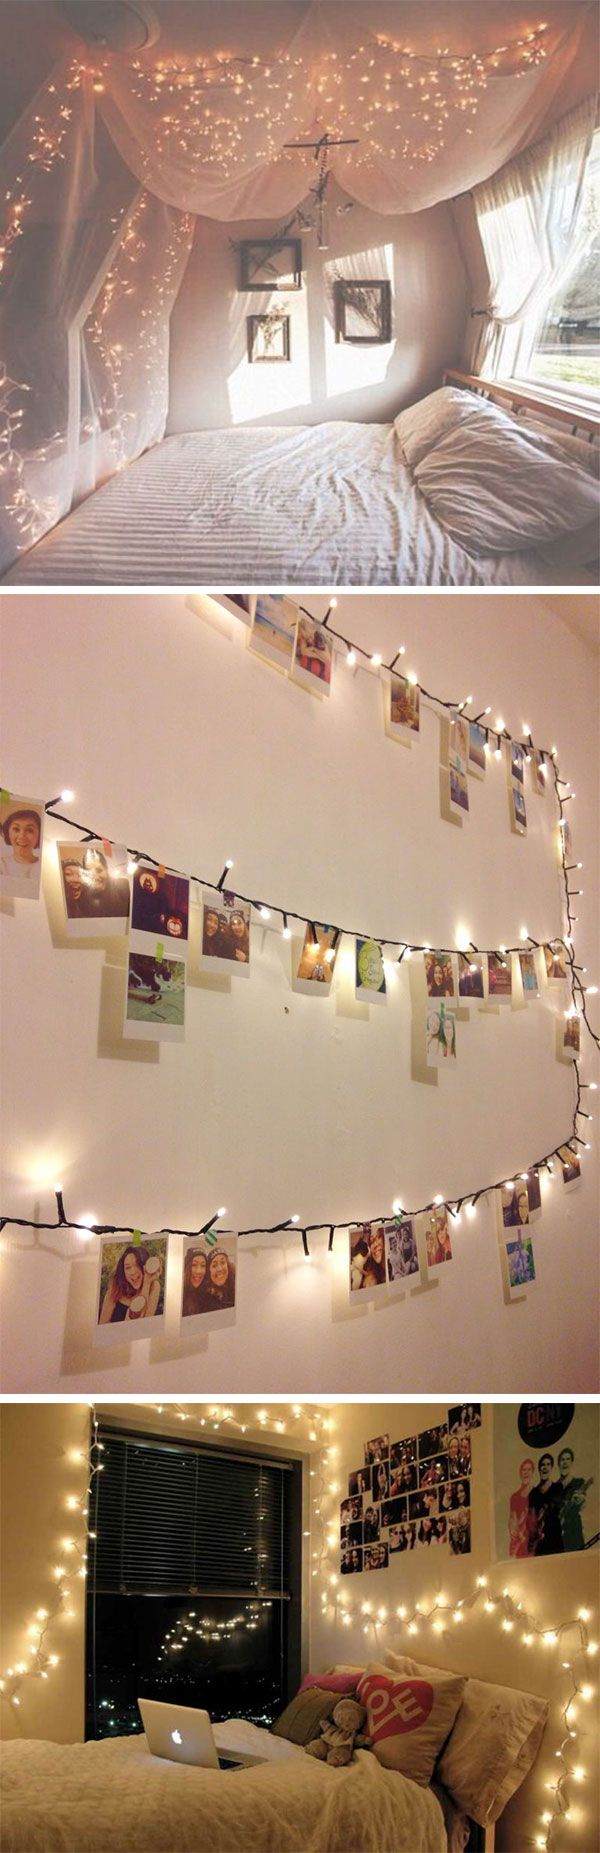 13 Ways To Use Fairy Lights To Make Your Home Look Magical. Dream BedroomDiy  ...